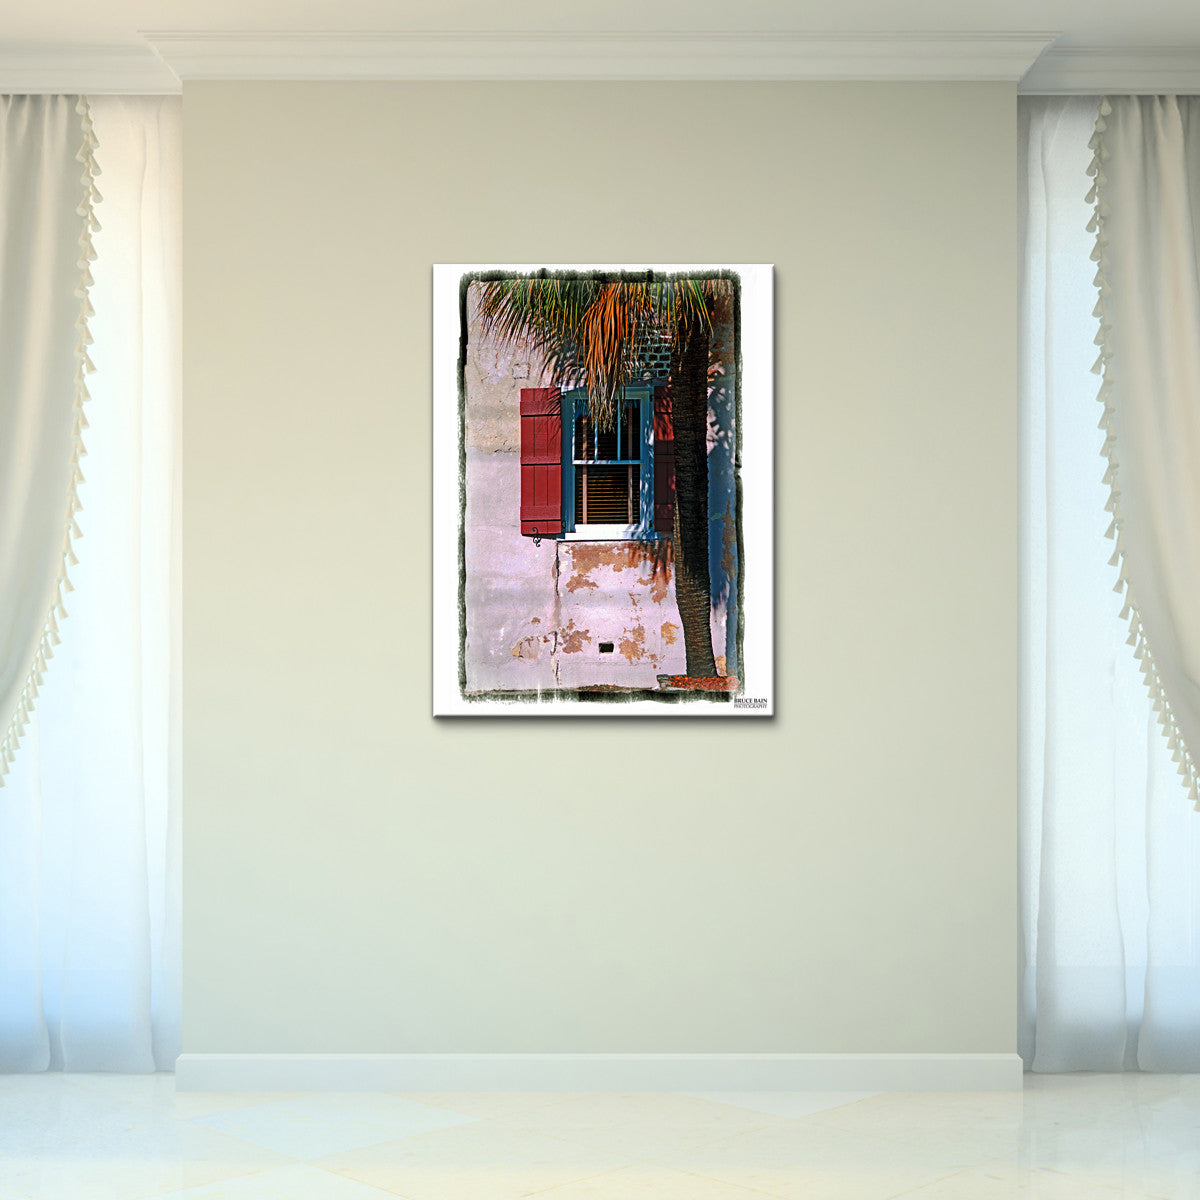 Bruce Bain 'Charleston Window' 32x24 inch Canvas Wall Art